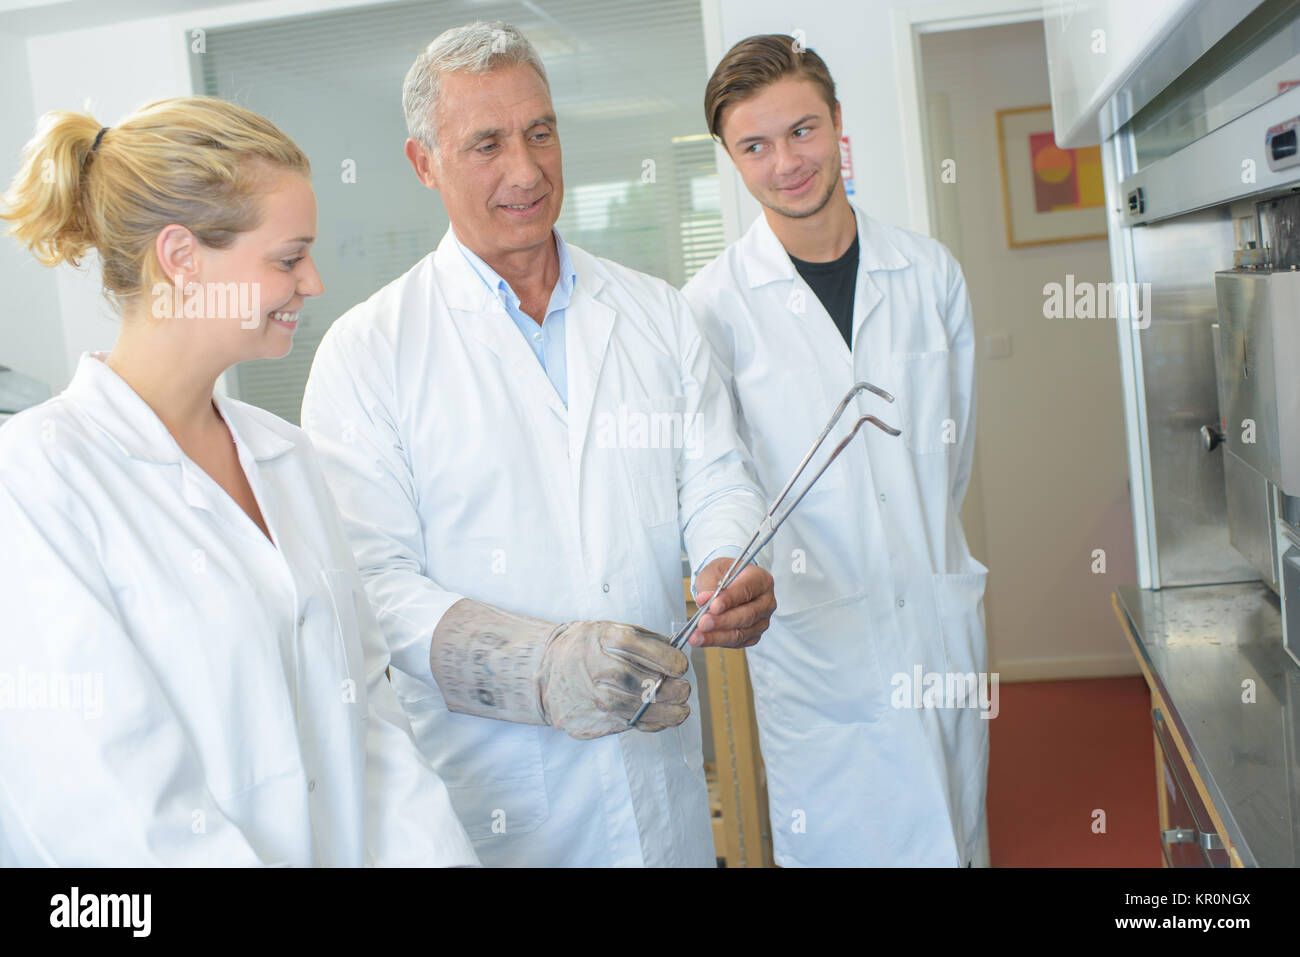 man with rod - Stock Image